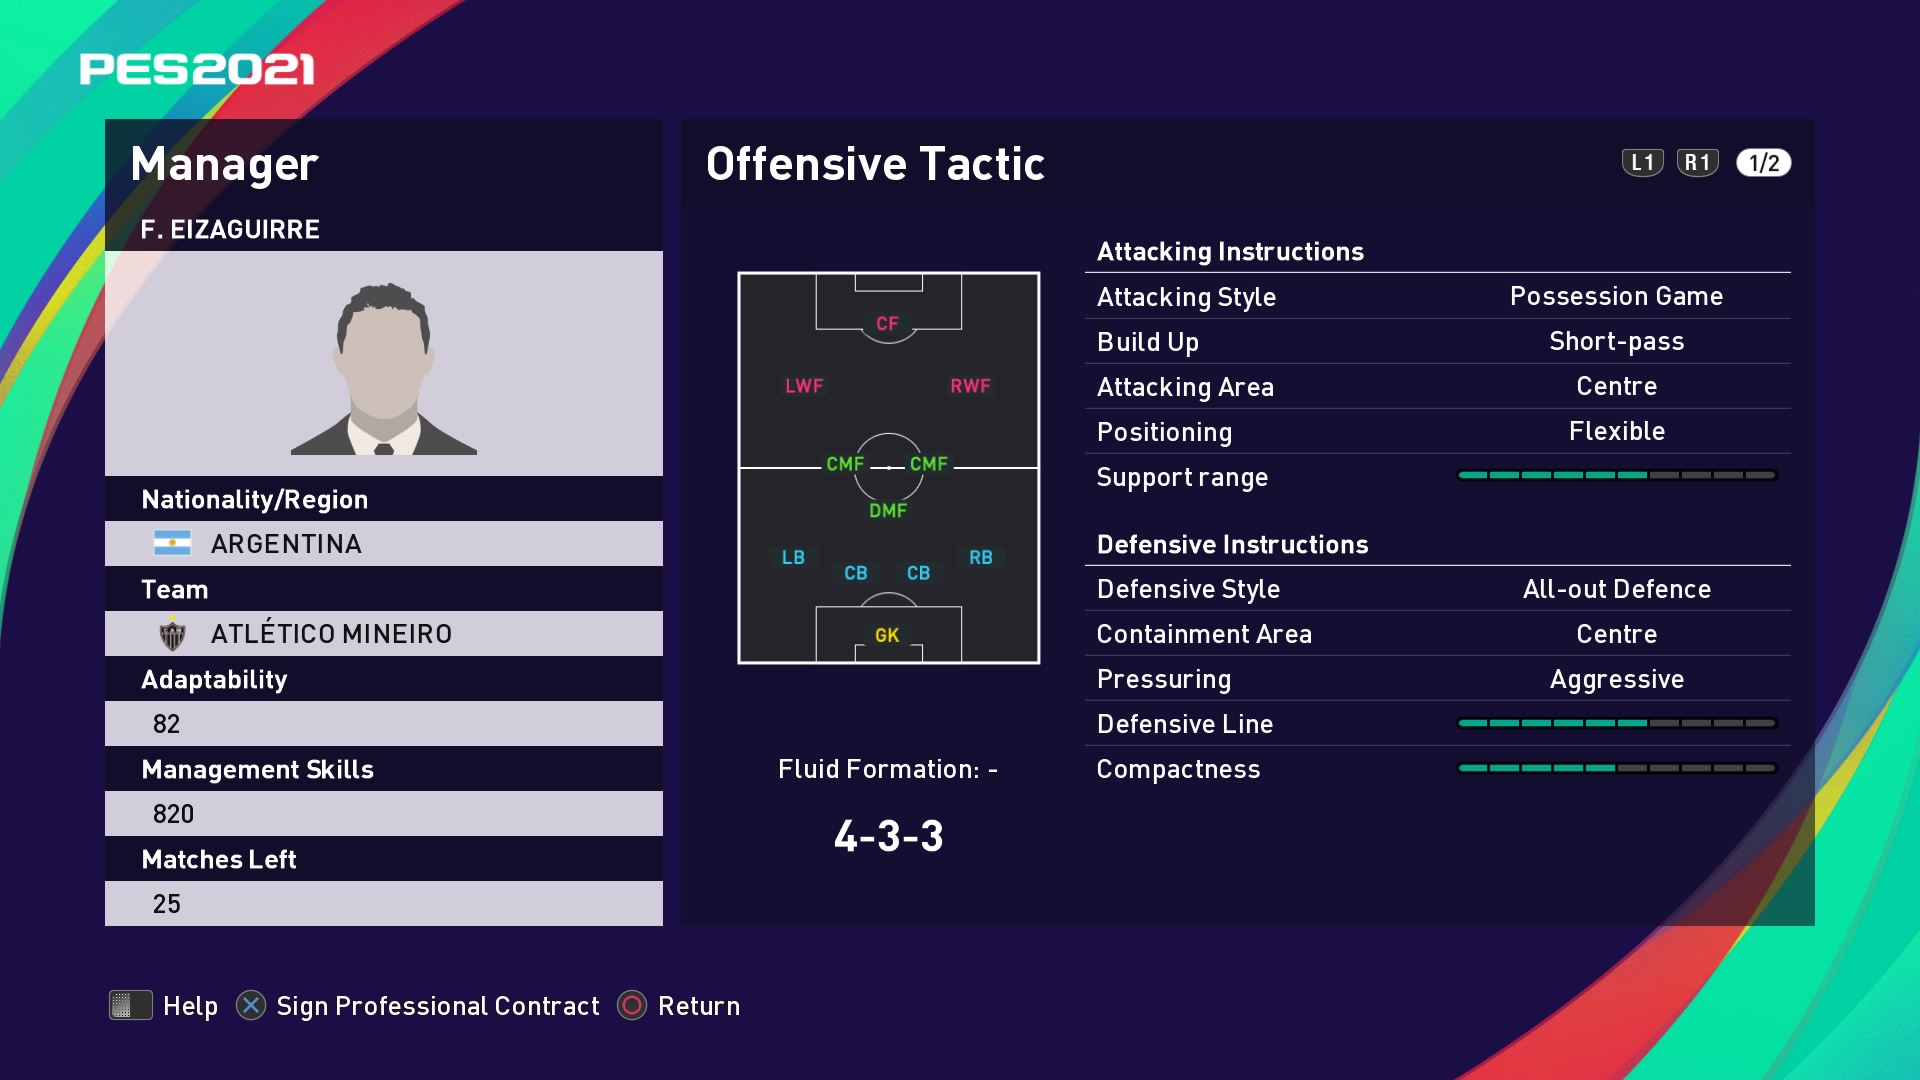 F. Eizaguirre (Jorge Sampaoli) Offensive Tactic in PES 2021 myClub